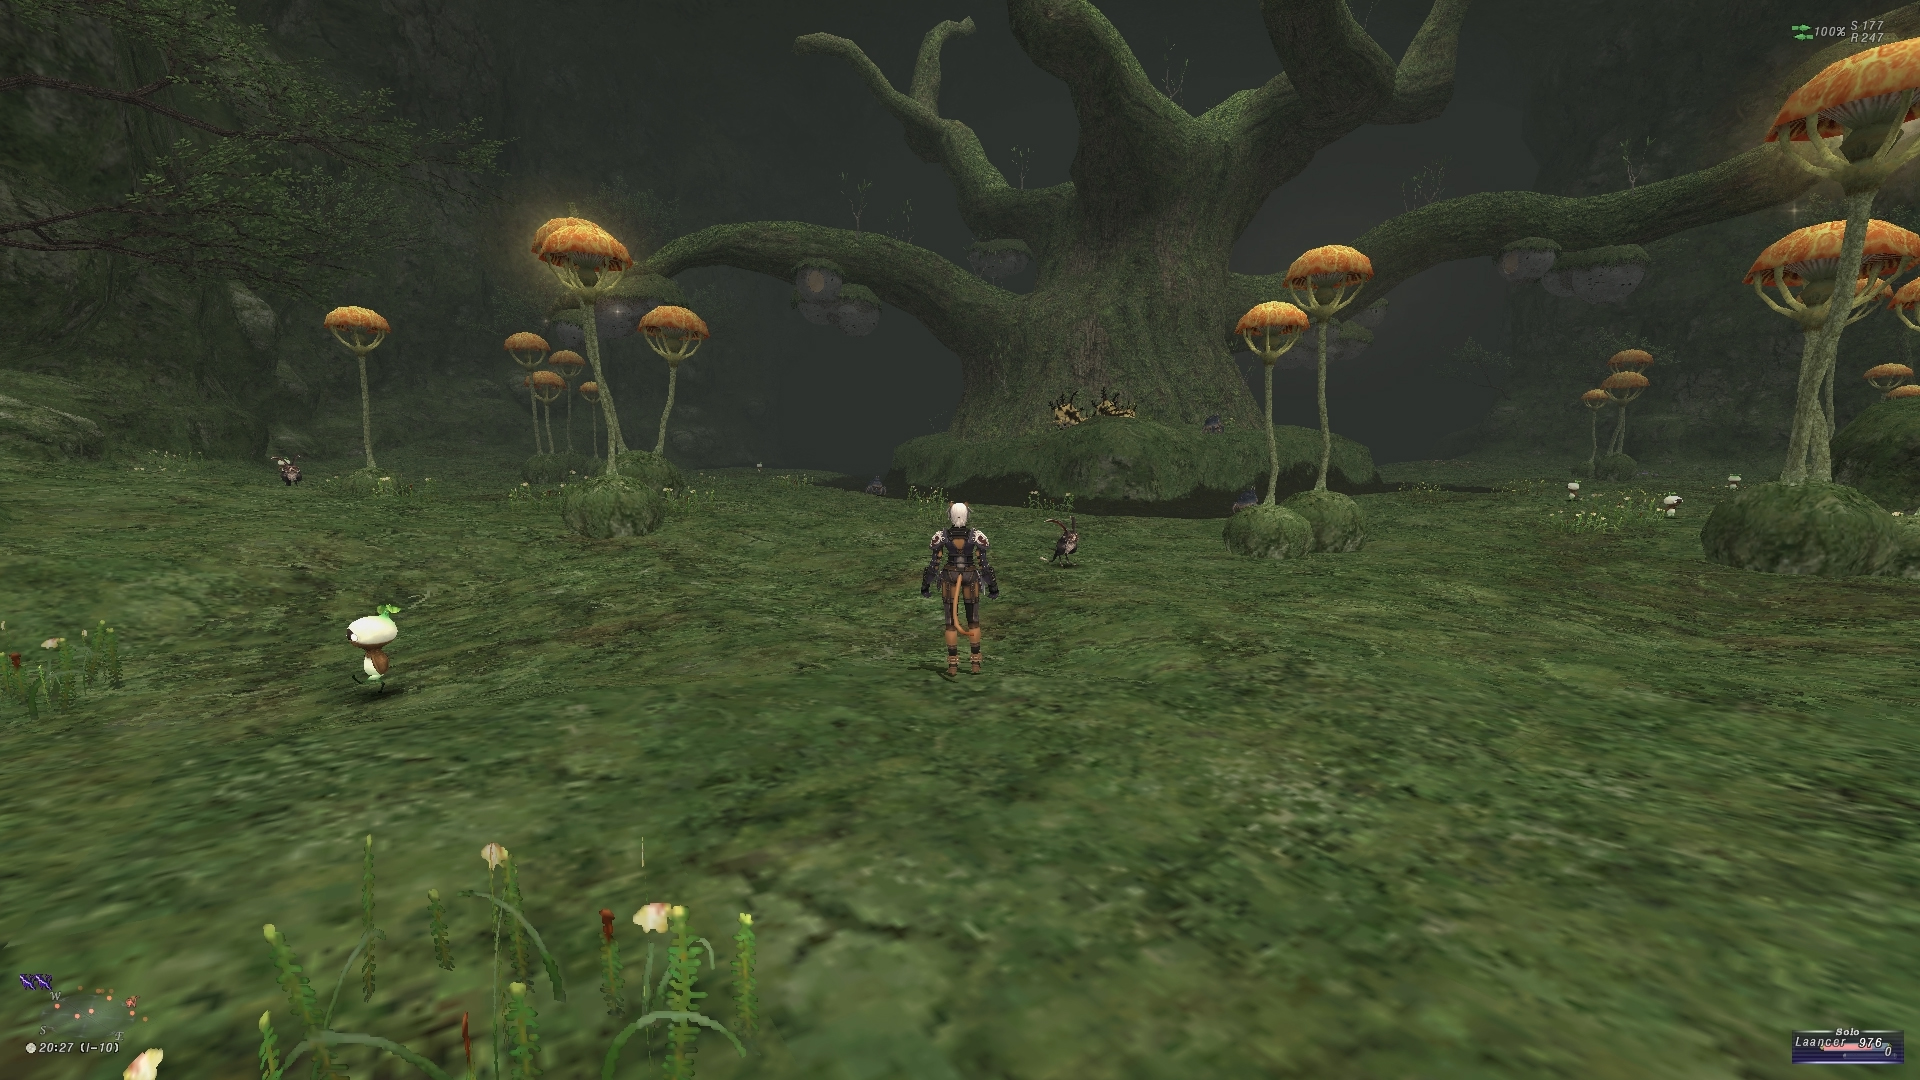 videogame avatar stands with back to camera in front of large trees and mushrooms.